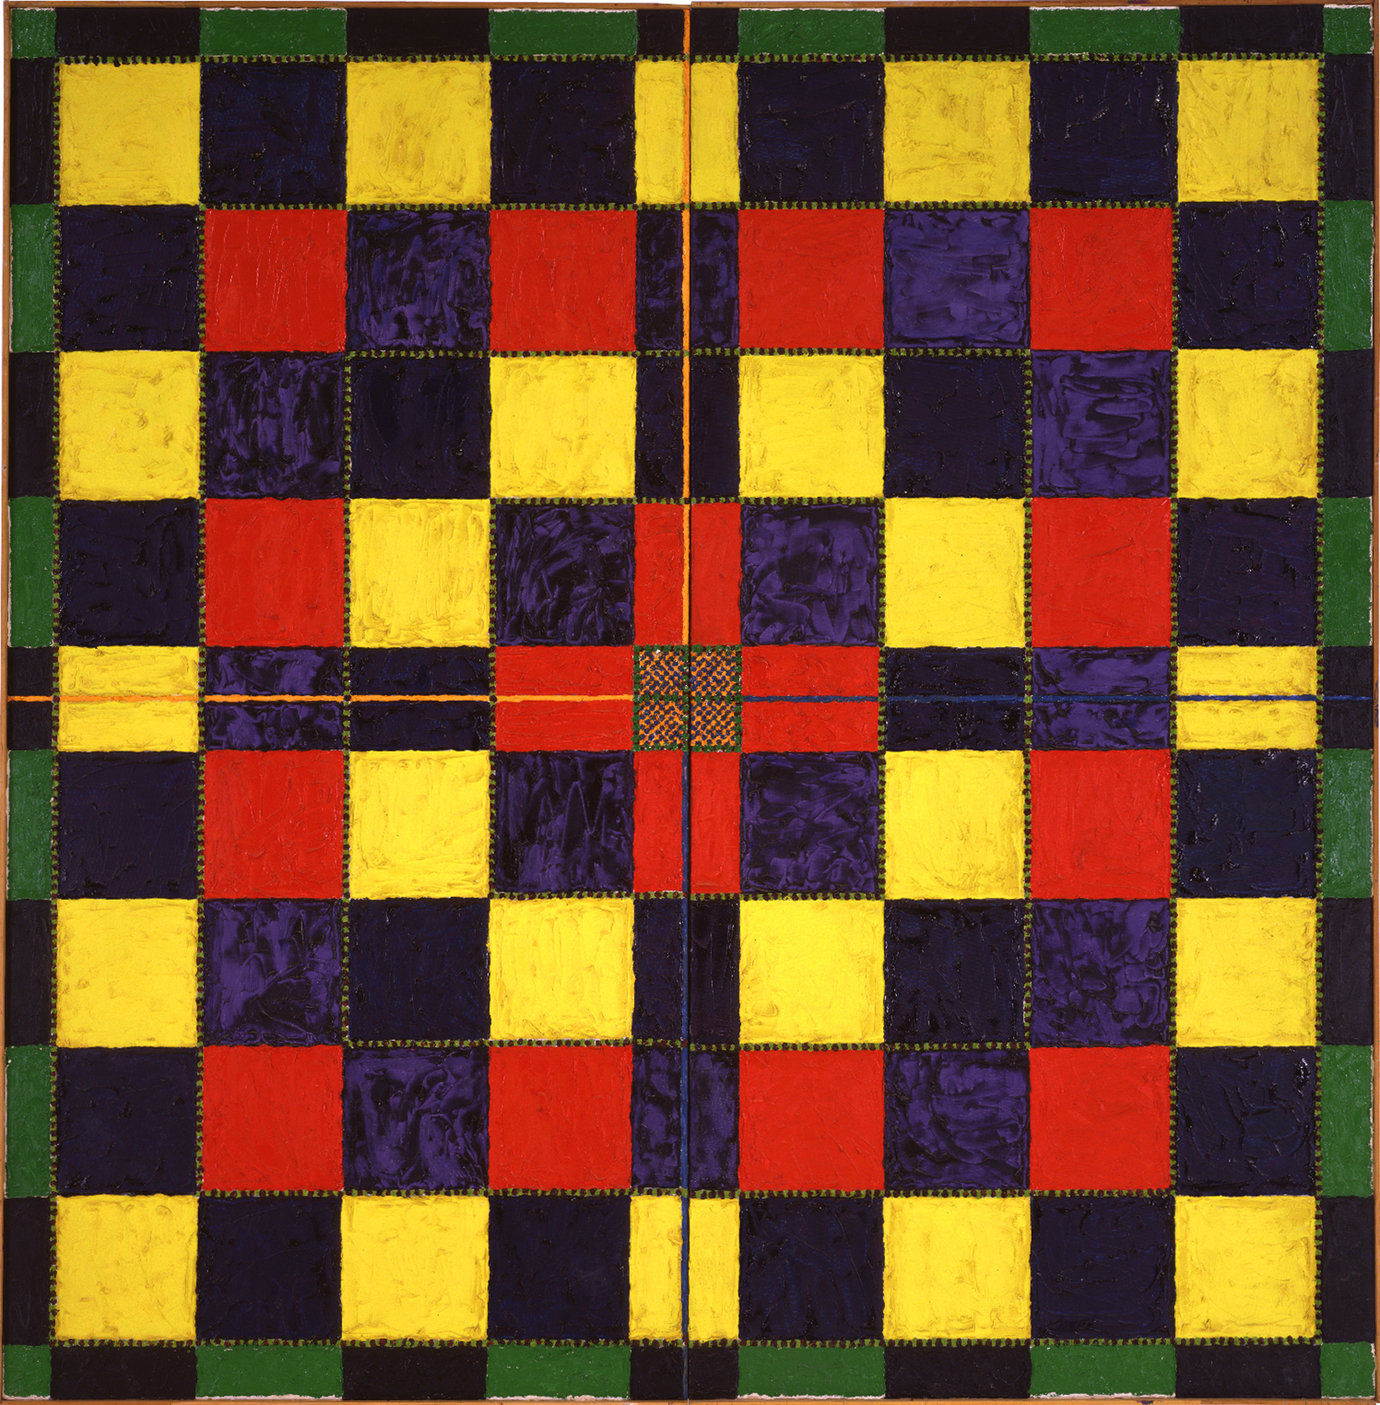 ", 1968. Oil on linen, 70-1/2 x 70-1/2"" (179.1 x 179.1 cm)."